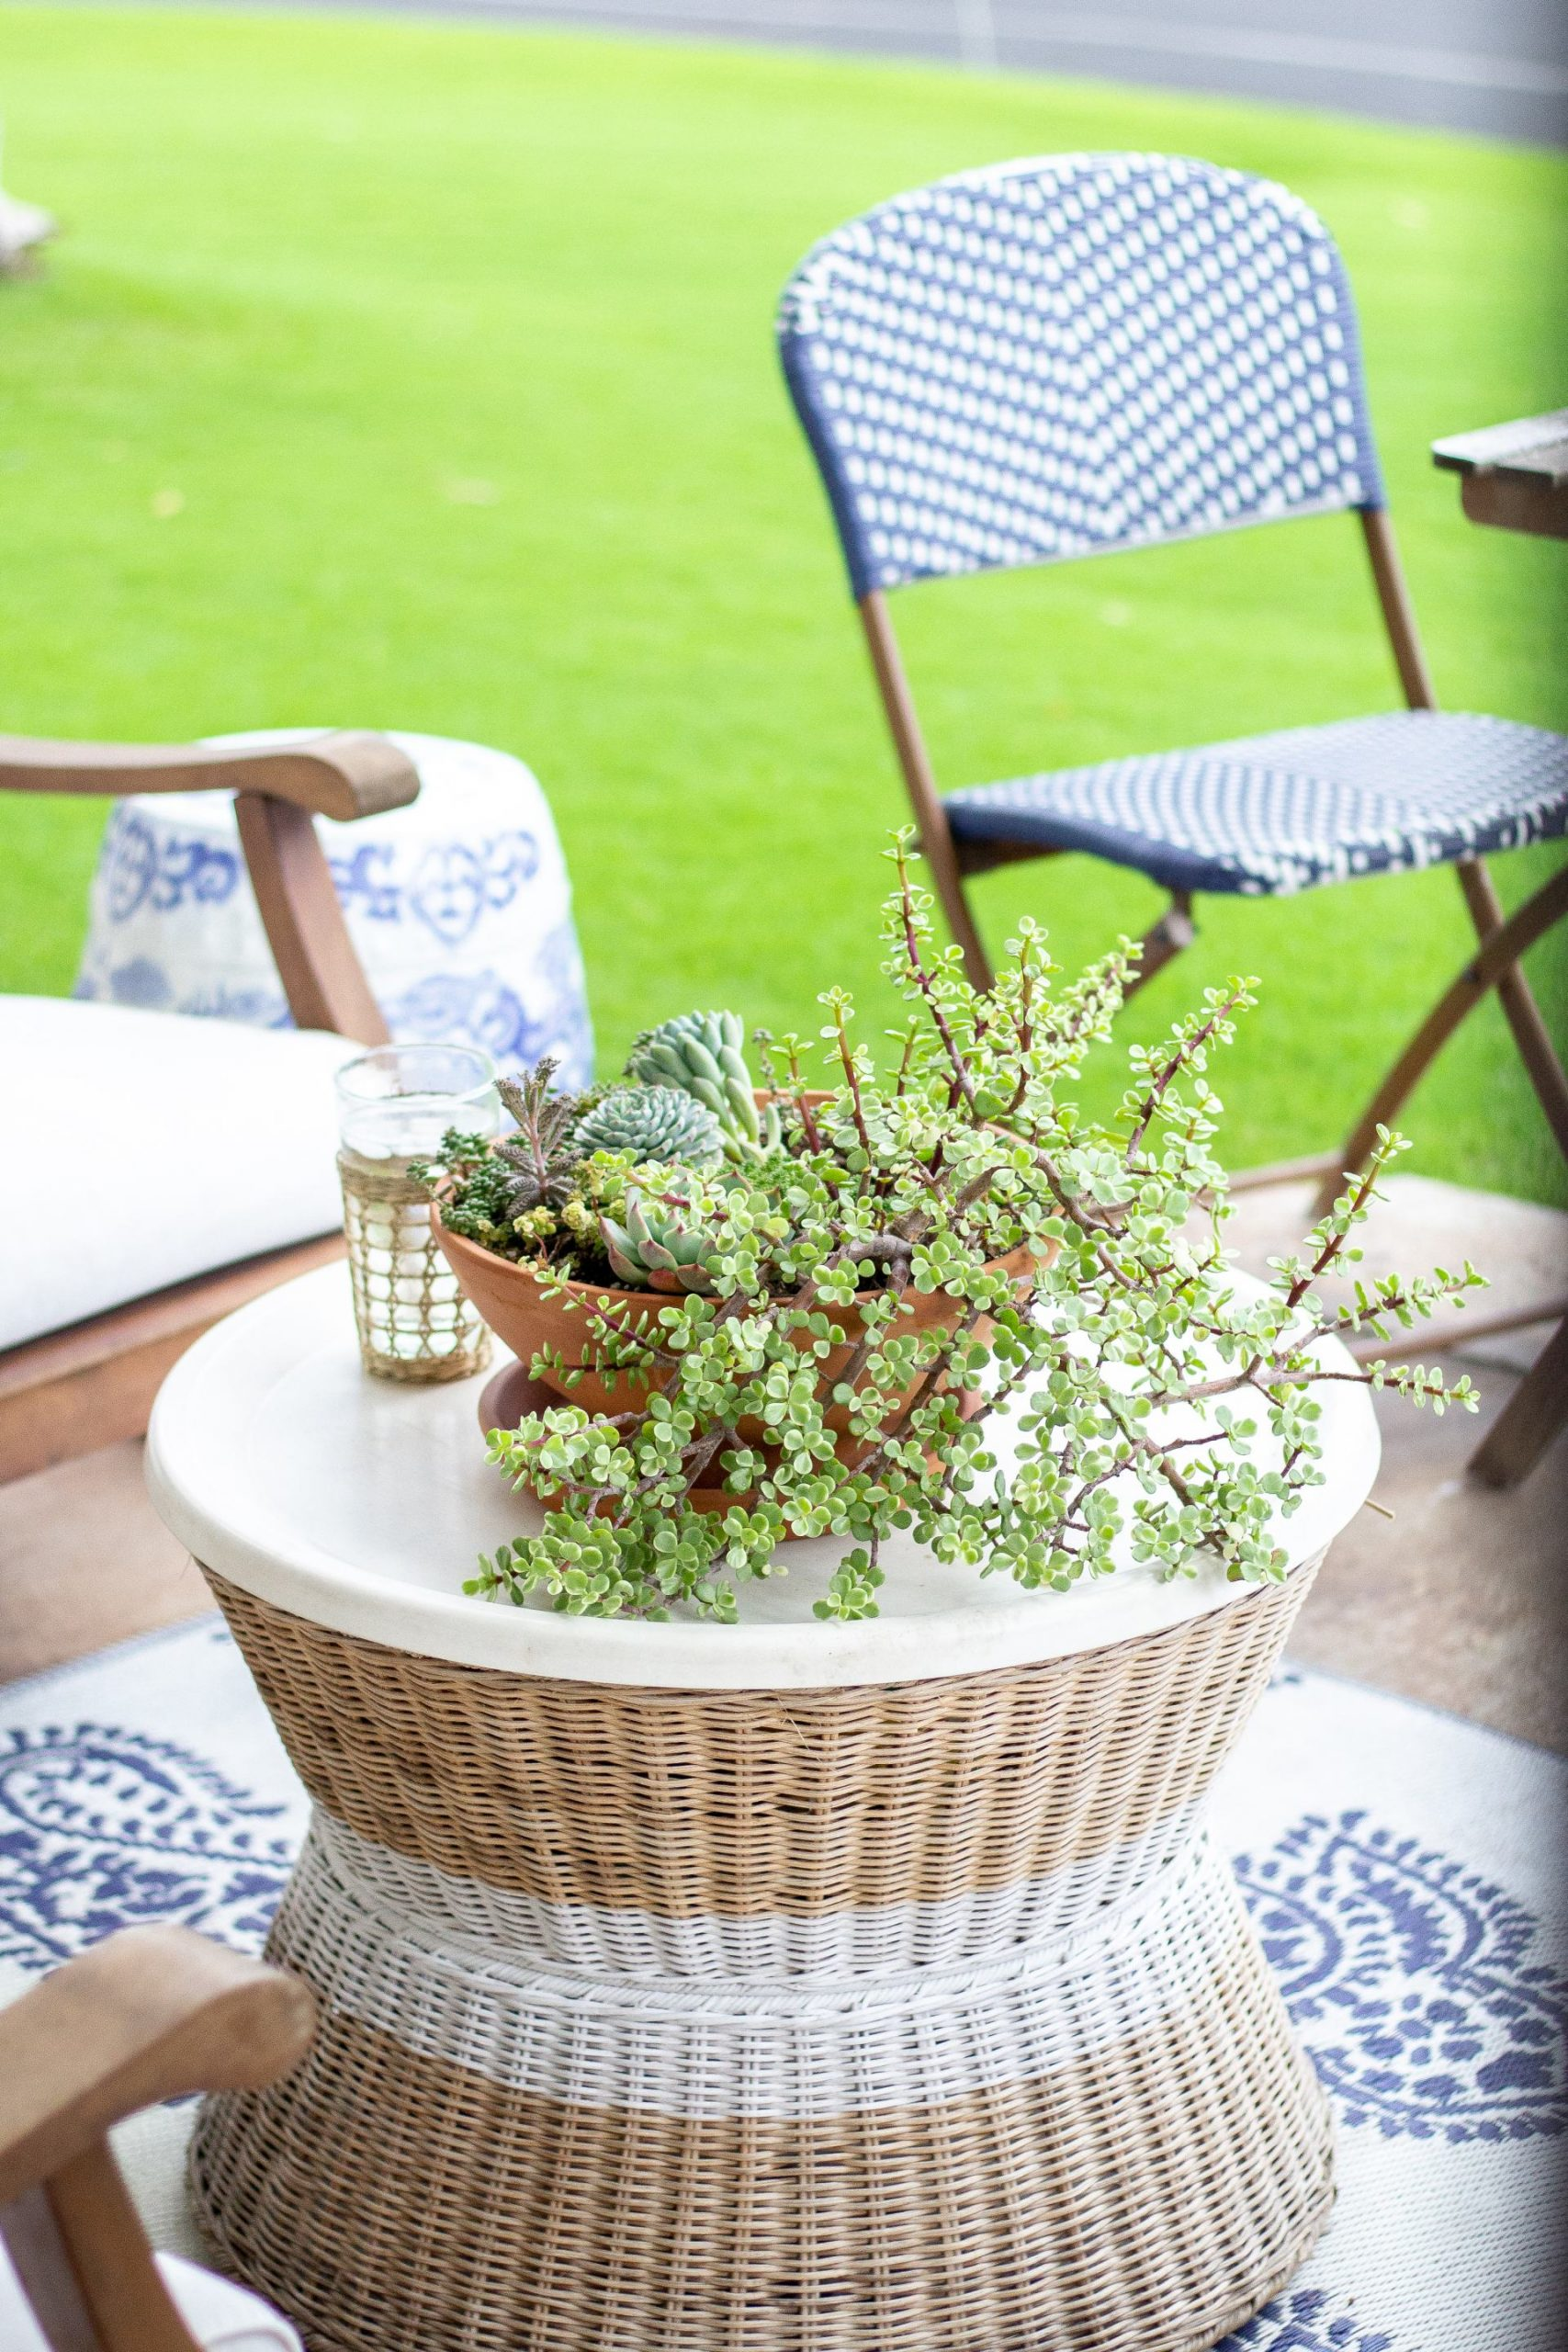 serena and lily style - patio decor - outdoor decor - blue and white - coastal style - nautical style - serena and lily inspo - outdoor furniture - porch decor - outdoor living - outdoor spaces - bistro table - bistro chair - bistro set - stripes - outdoor rug